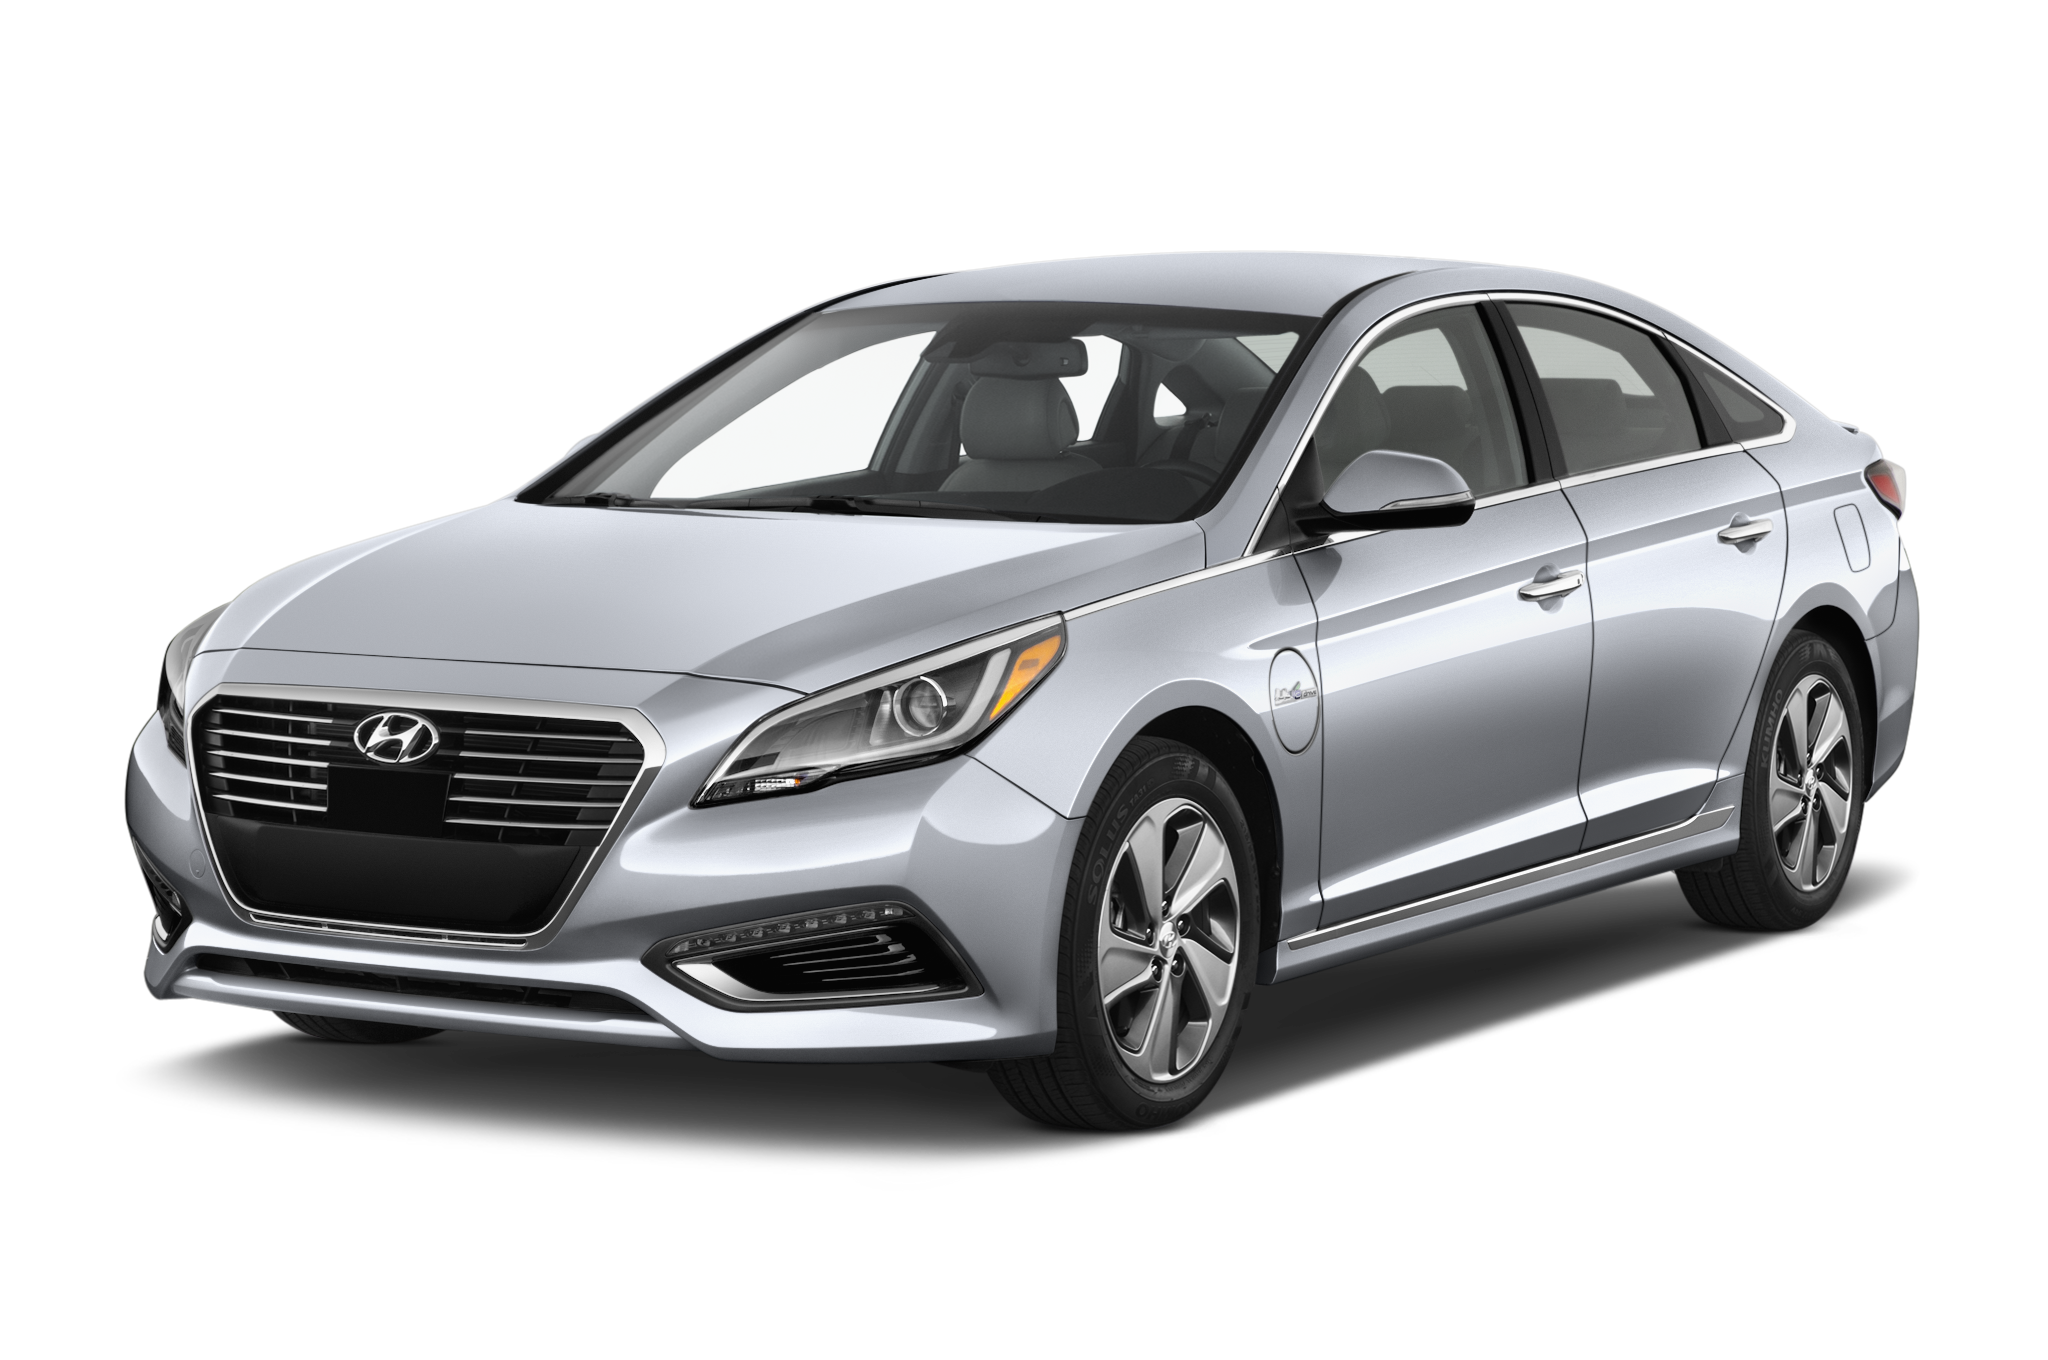 Tricks on choosing Trustworthy Hyundai car